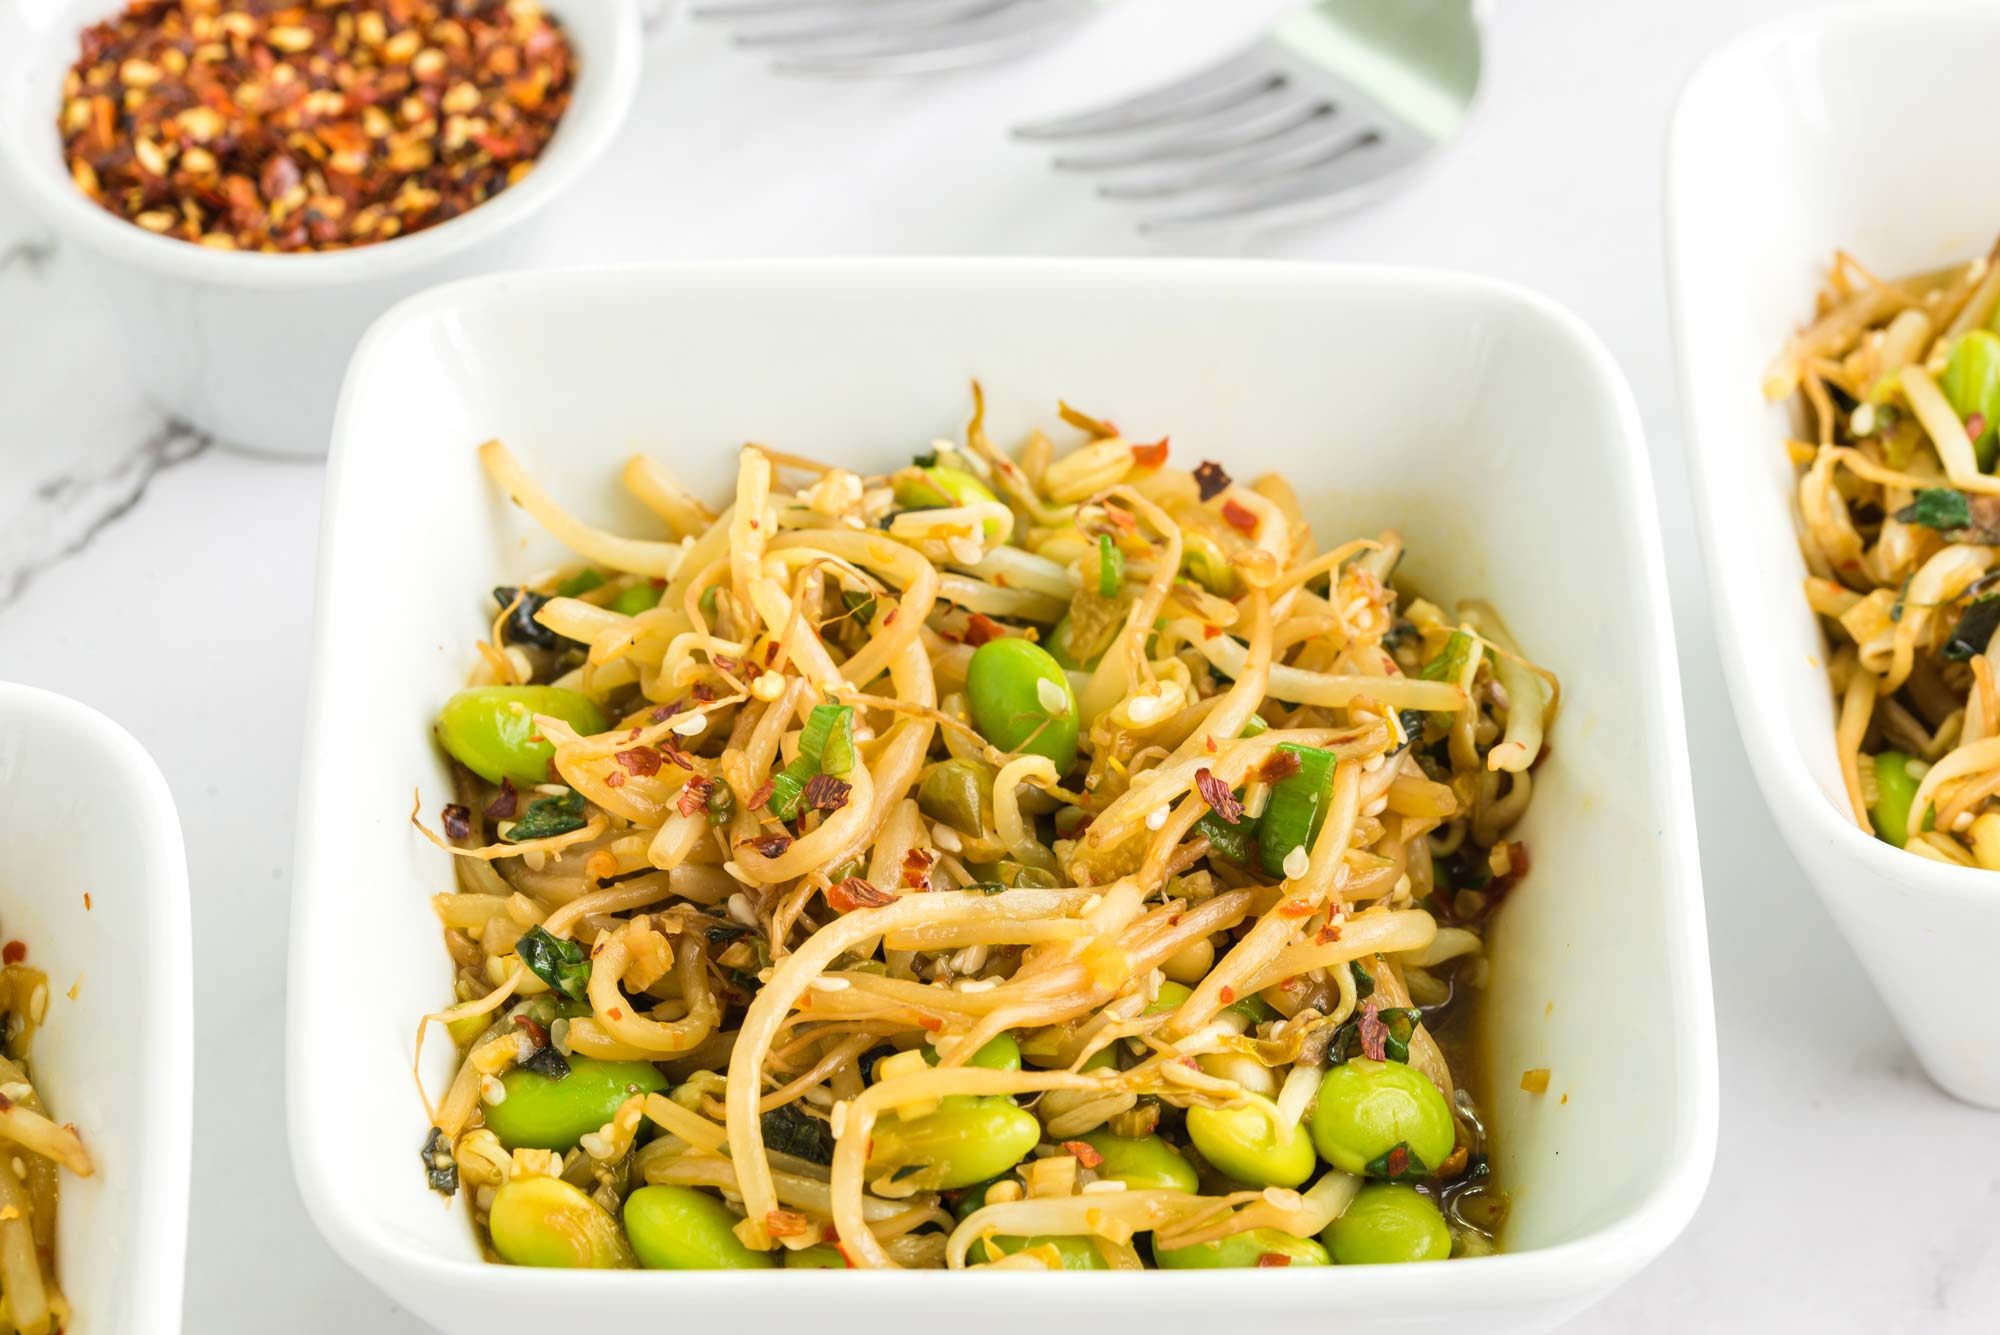 garlicky mung bean sprouts in bowls